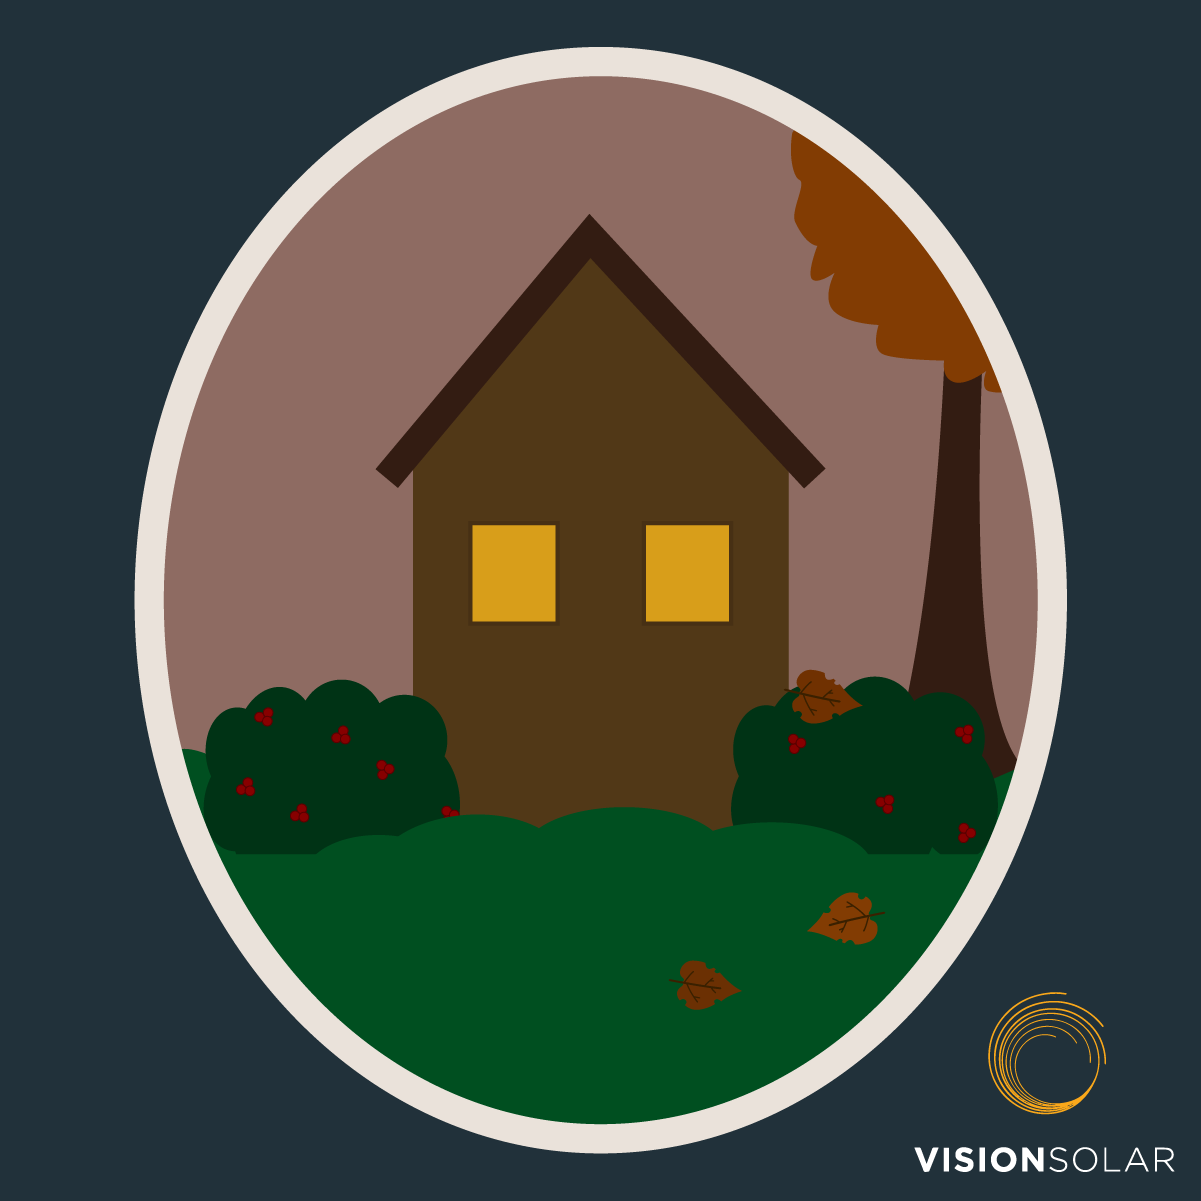 Vision Solar : preparing Your Home for Cold Weather